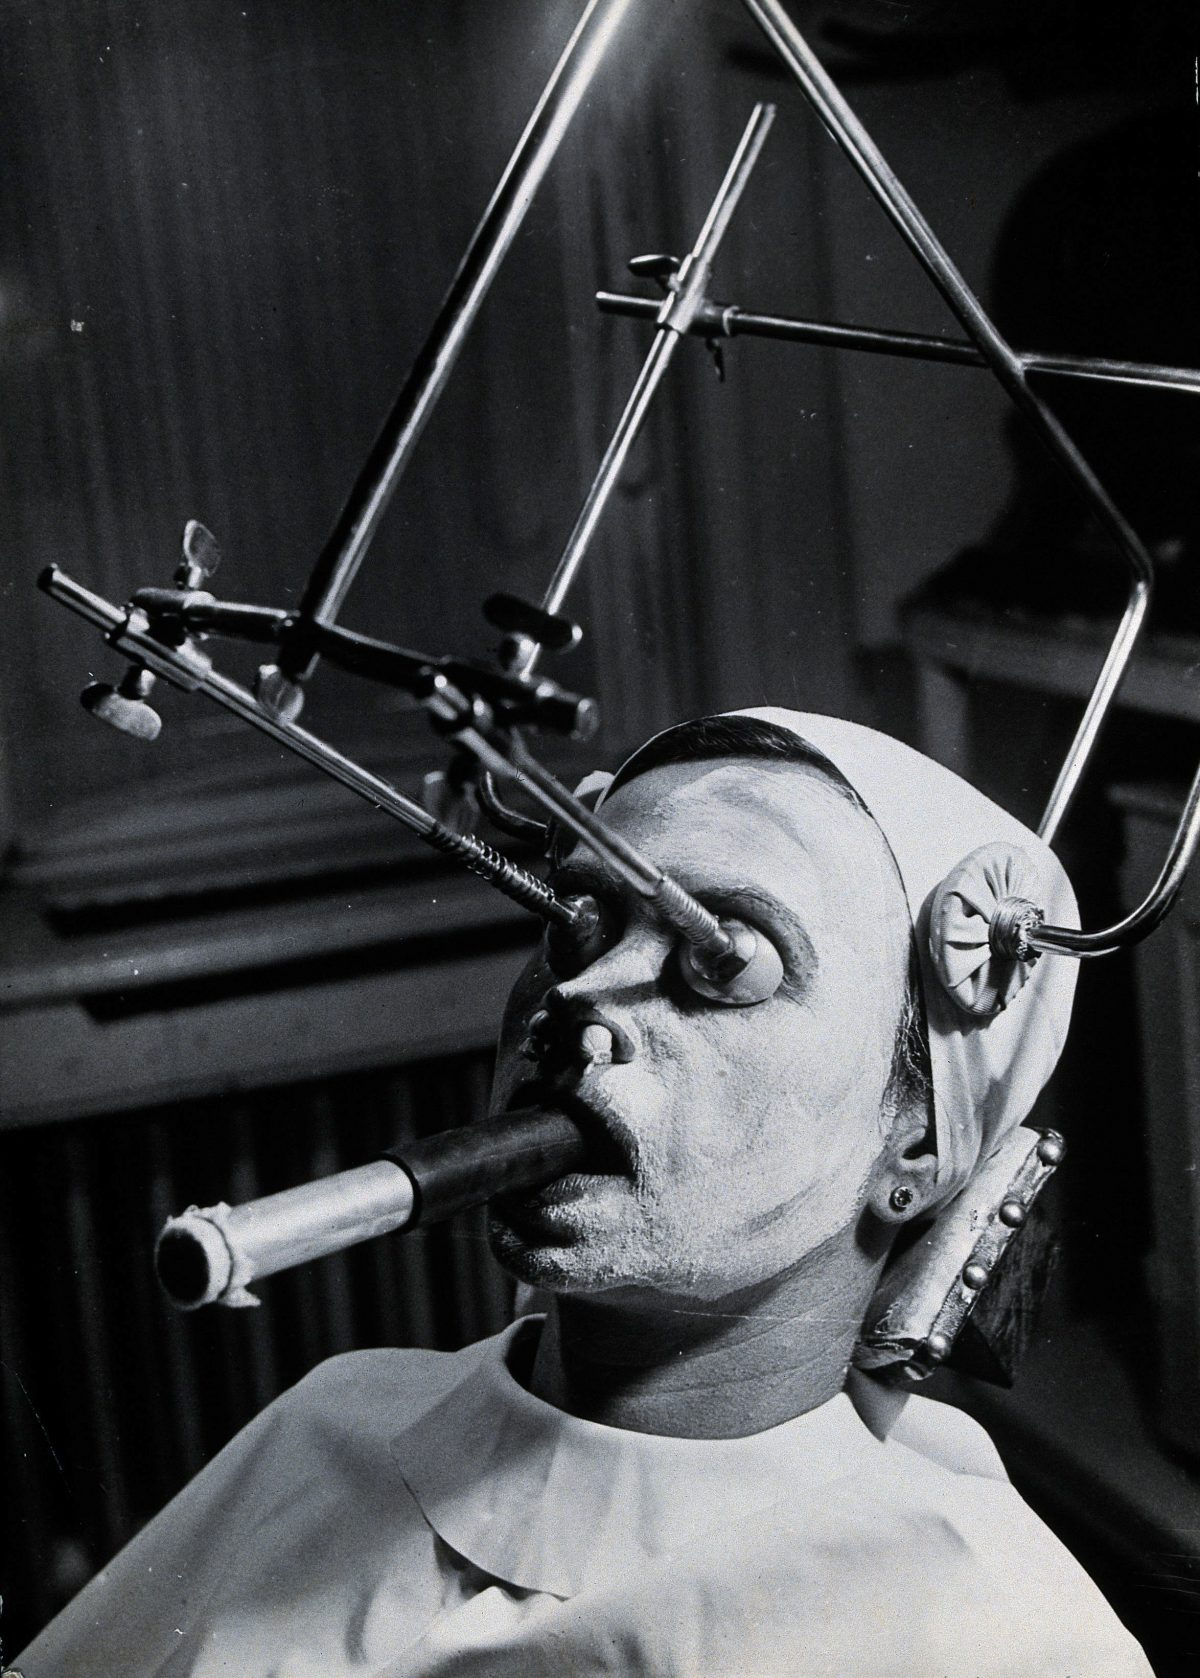 Freckle removal: a woman having a skin peel to remove freckles reclines with a metal contraption positioning her head and a breathing tube in her mouth, Hungary. Photograph by André Just, ca. 1937.